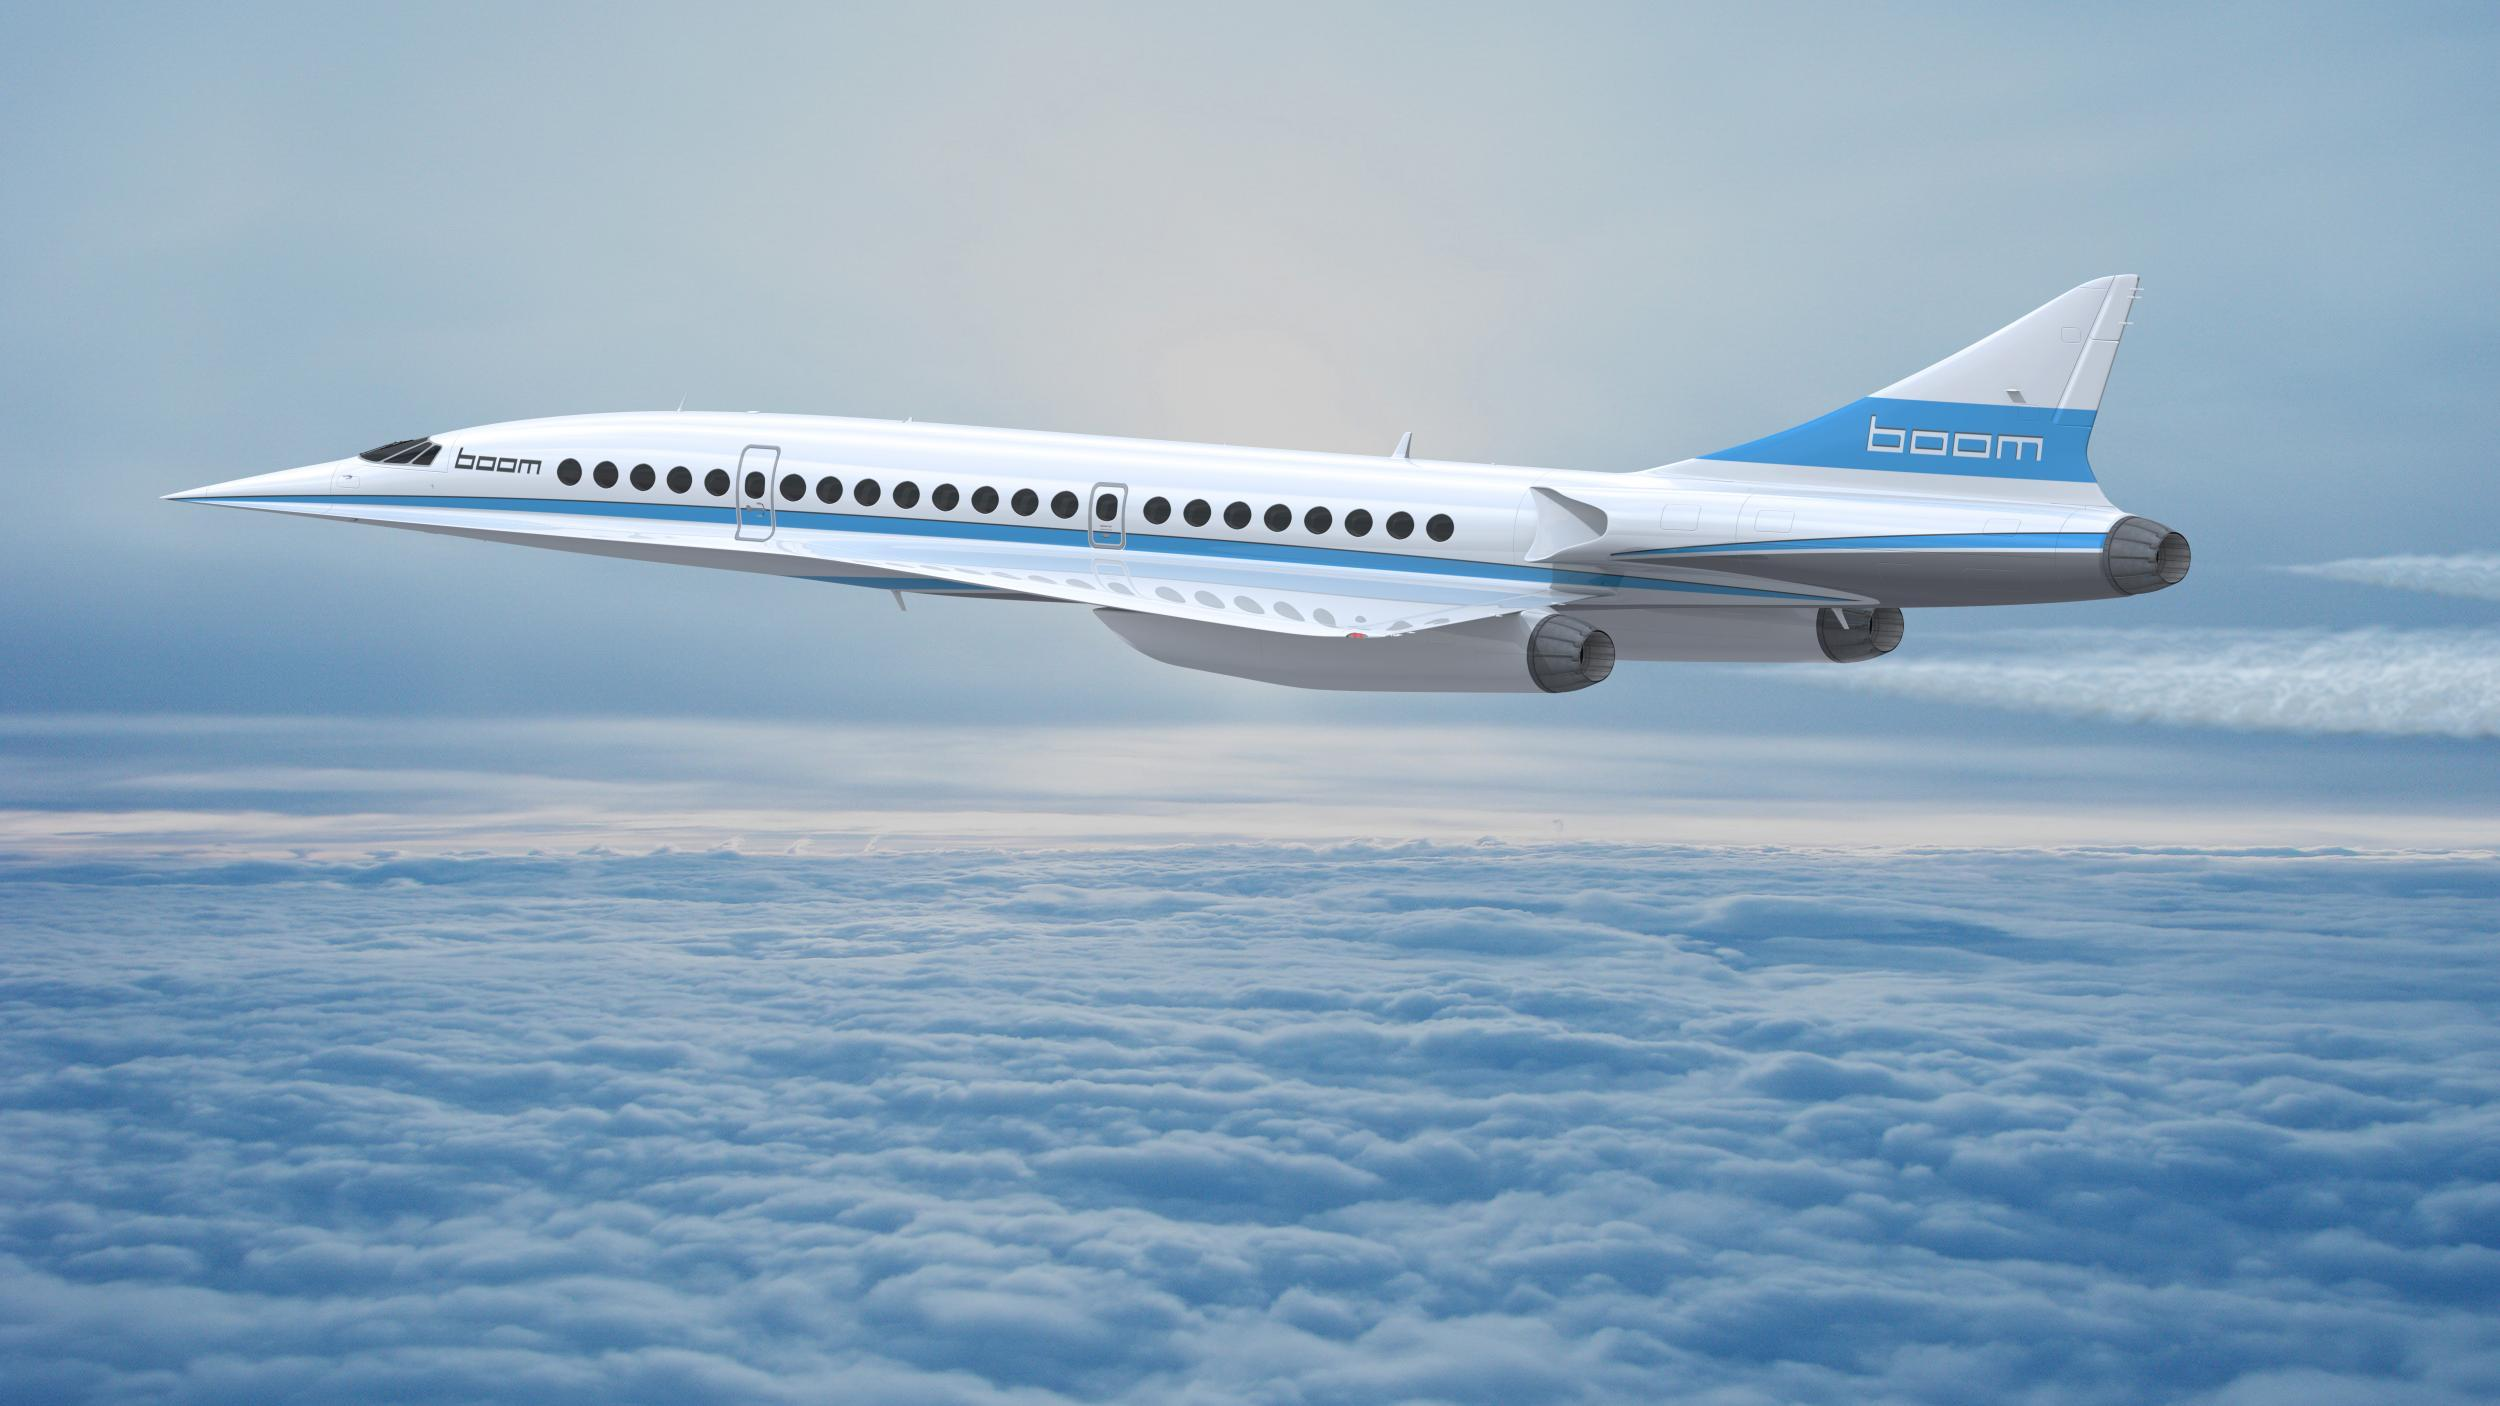 Boom Supersonic jet set to fly from London to New York in three hours 15 minutes by 2025